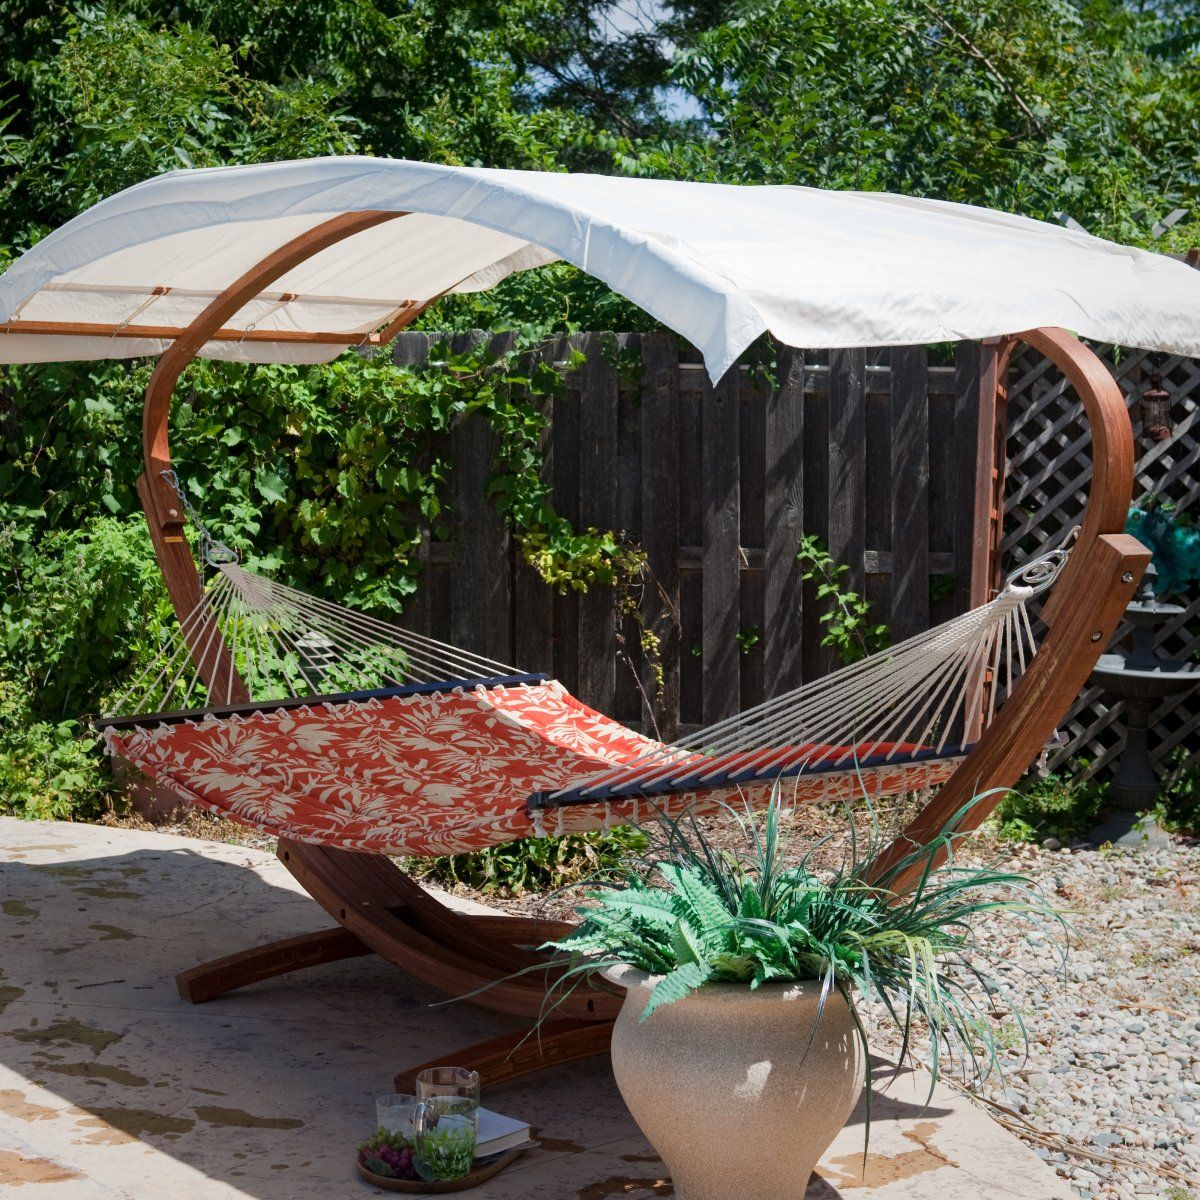 Bliss Hammocks Wooden Arc Hammock Stand With Canopy For